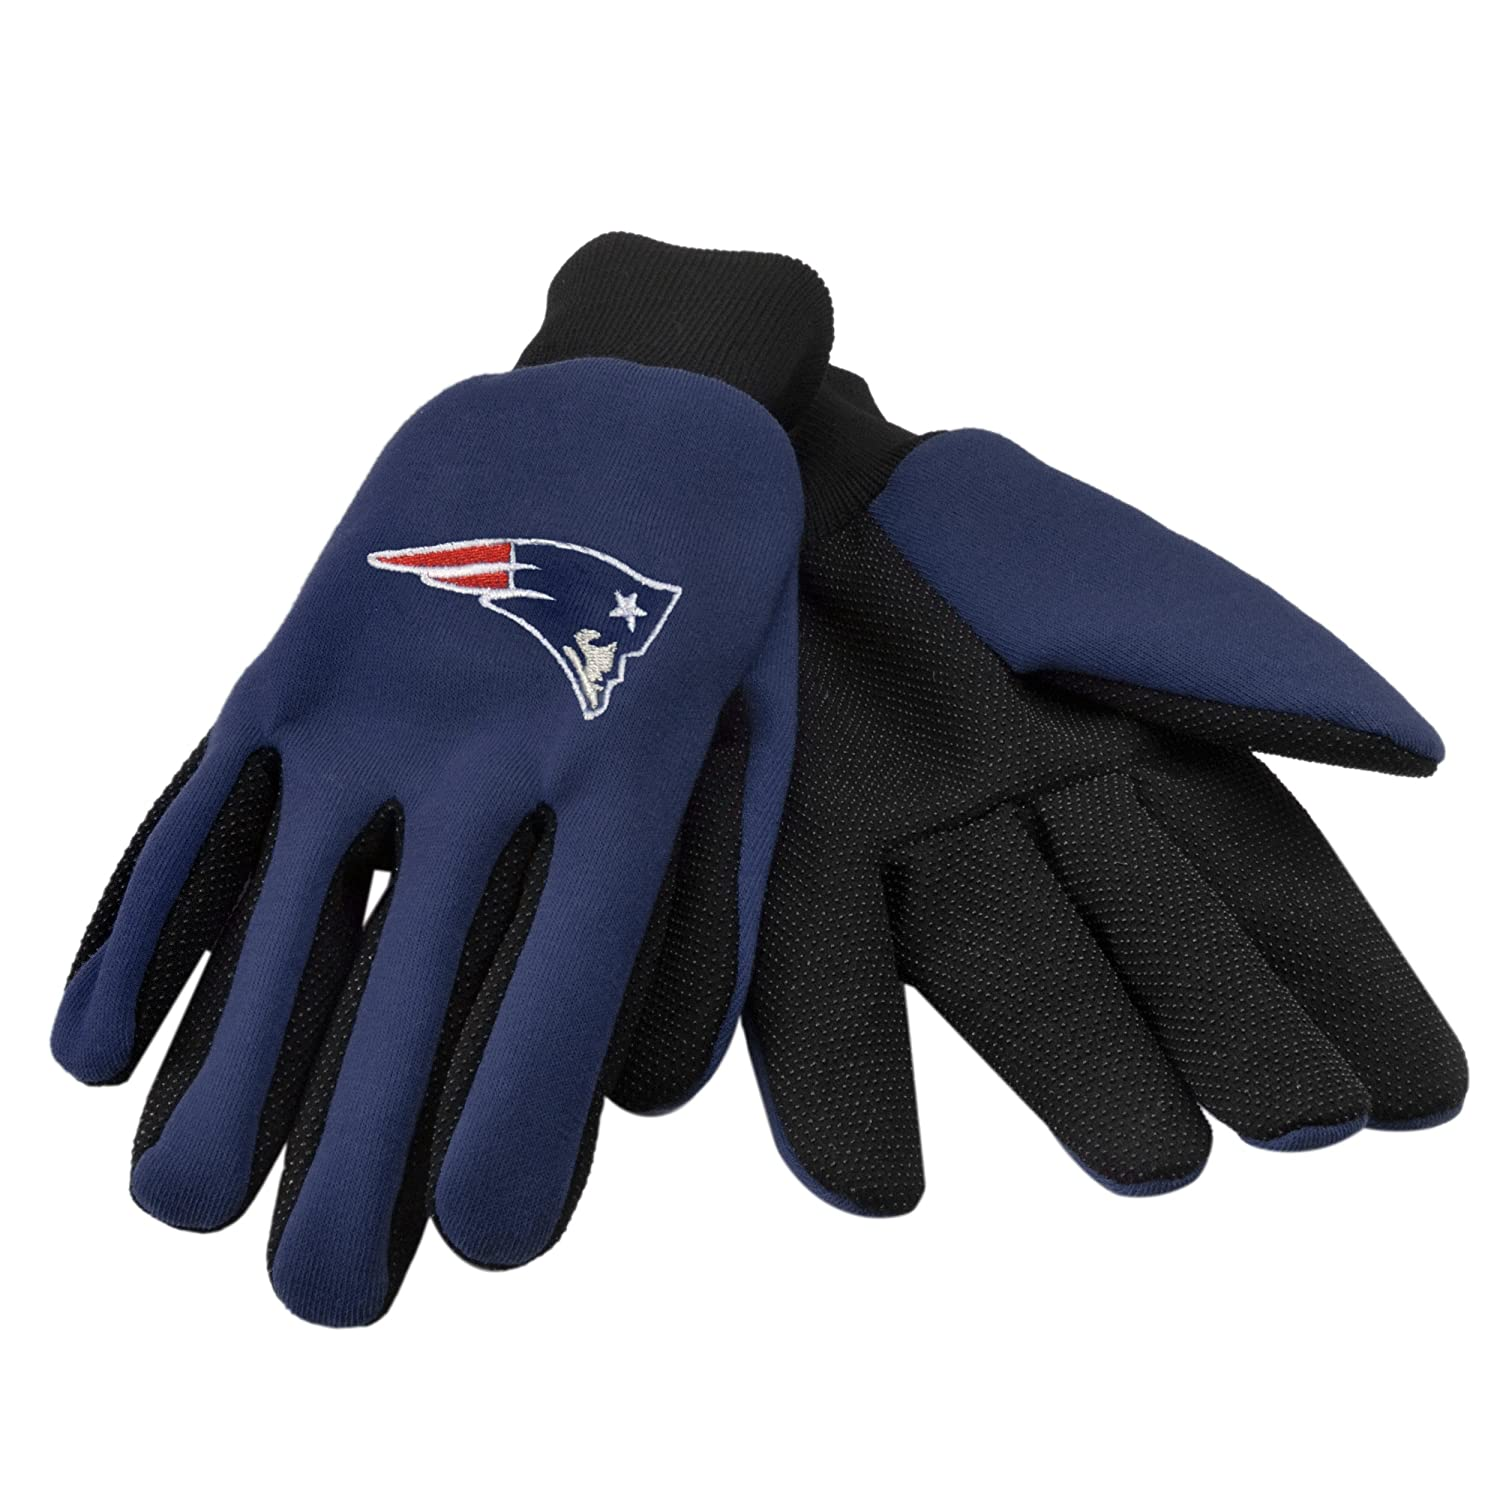 Forever Collectibles NFL New England Patriots zweifarbig Utility Handschuhe, Schwarz GLVWKNF11NP